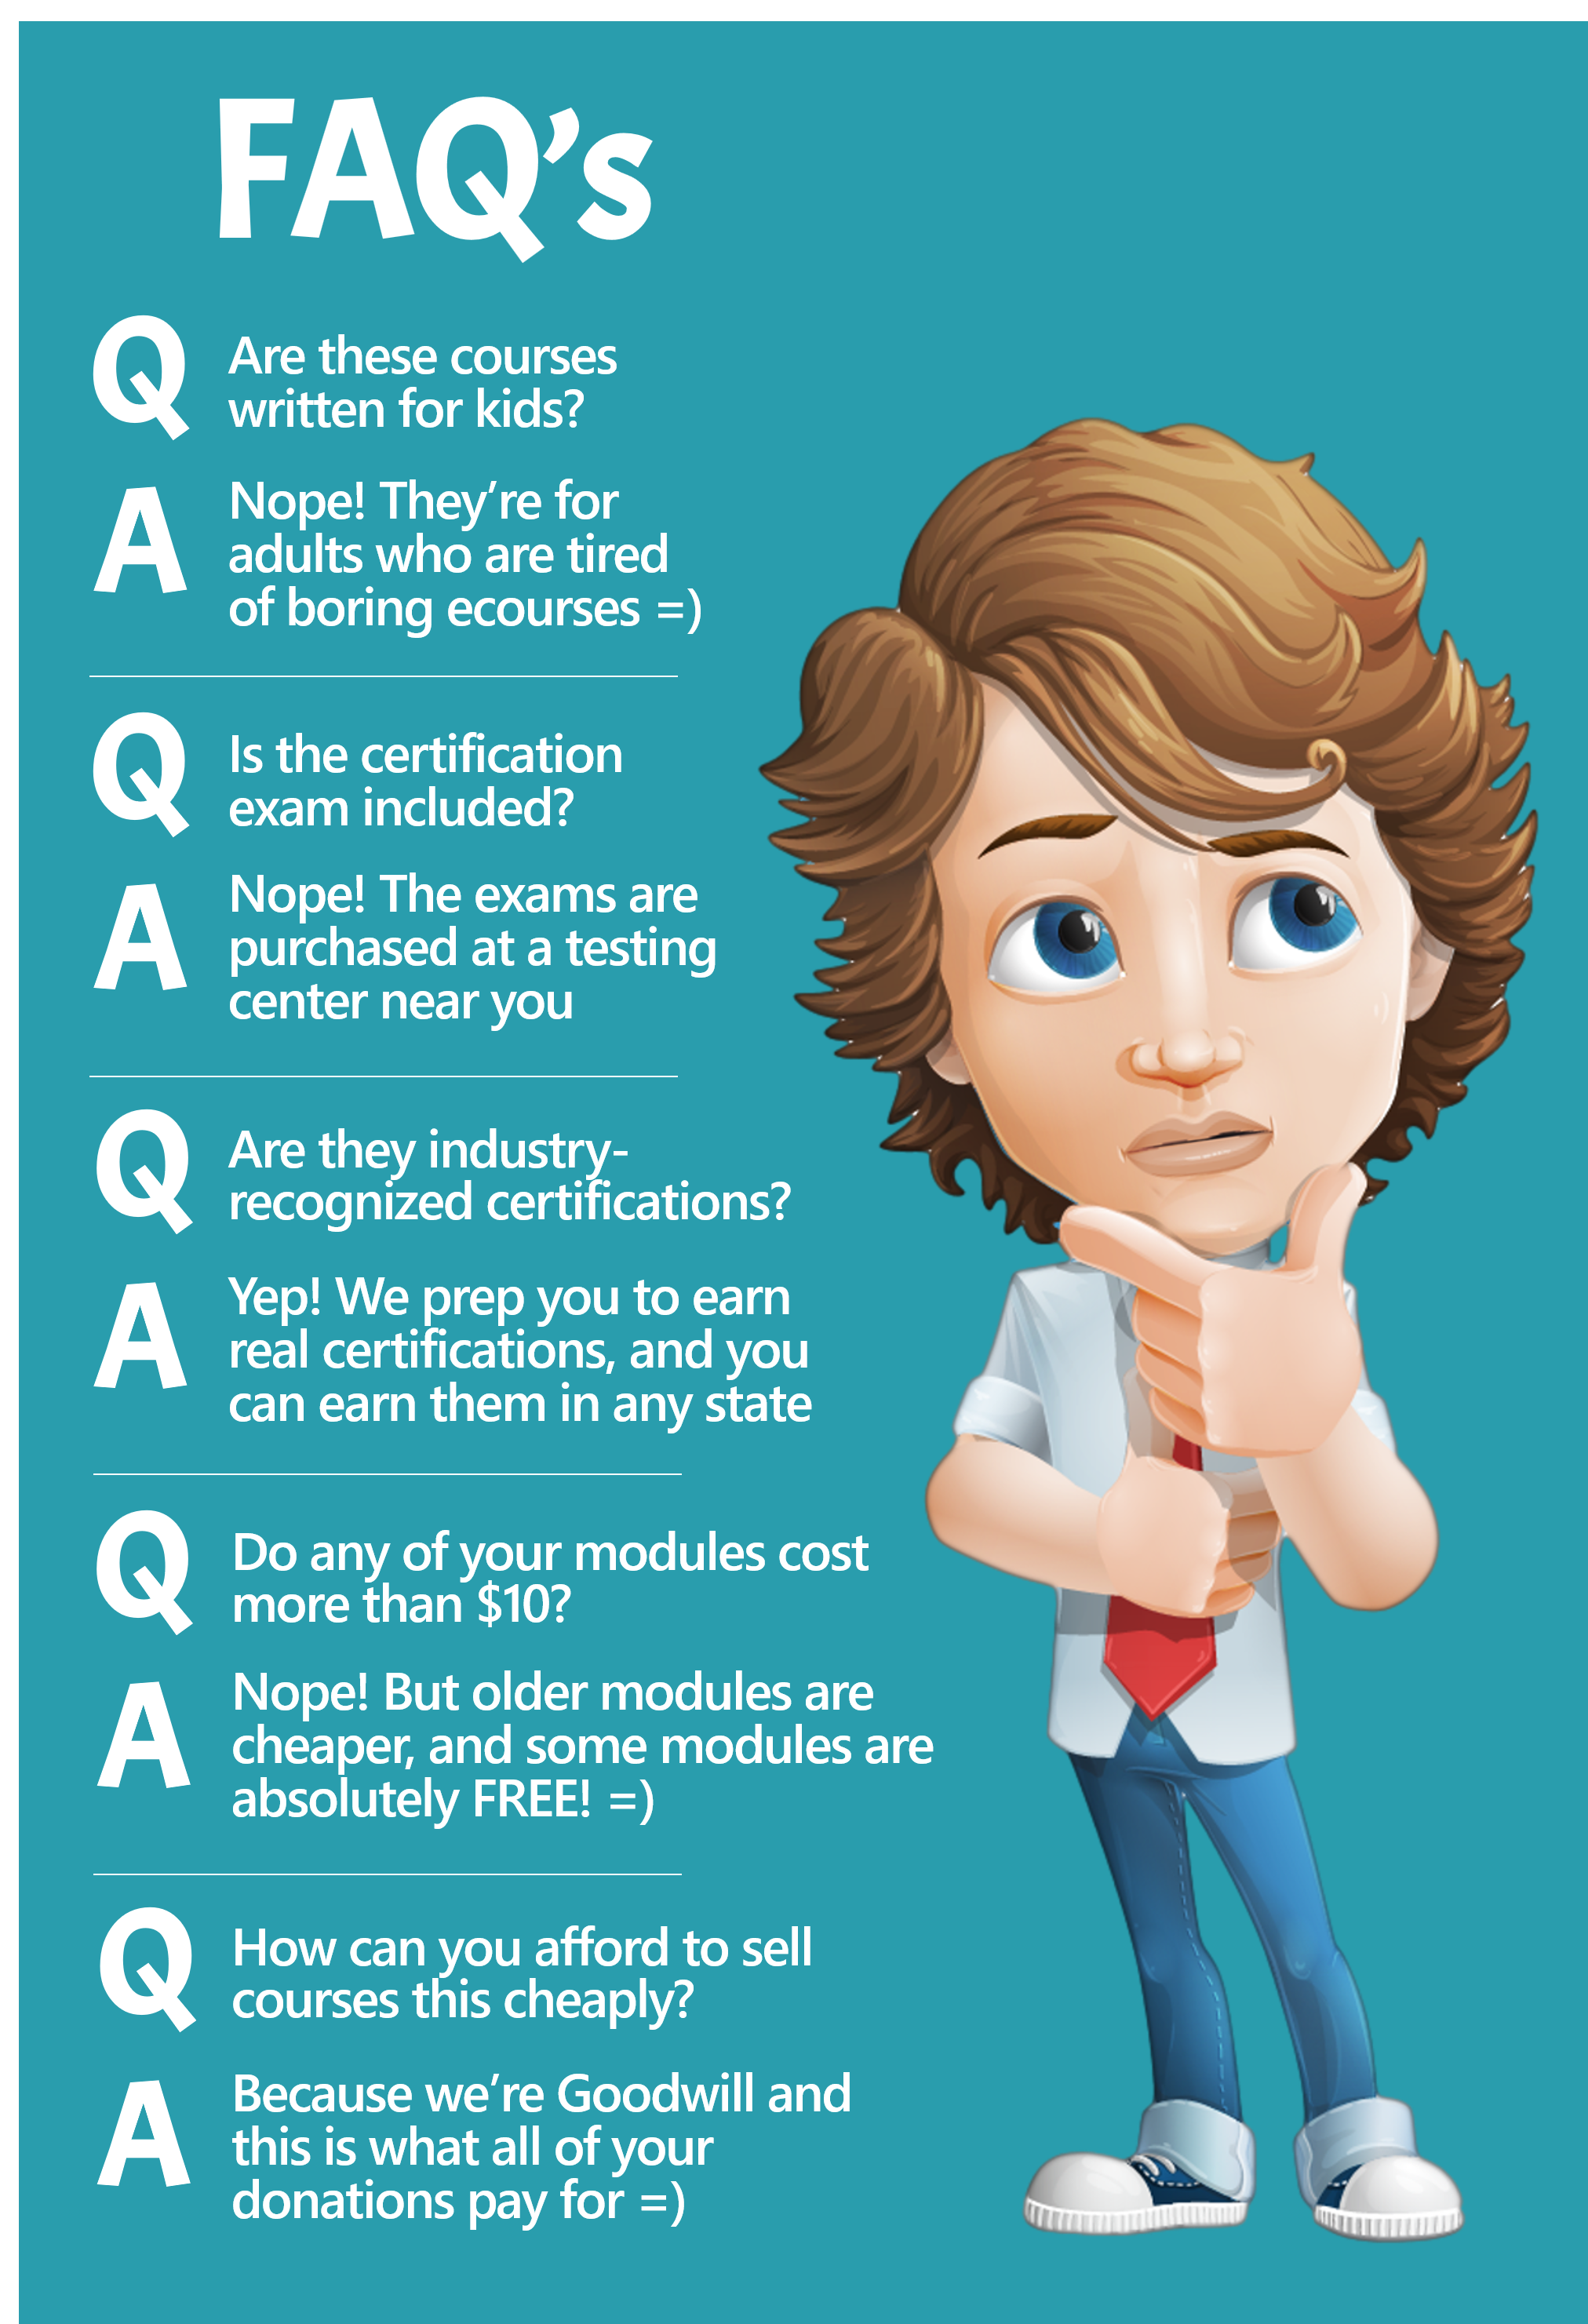 FAQs: Question: Are these courses written for kids? Answer: Nope! They're for adults who are tired of boring ecourses. Question: Is the certification exam included? Answer: Nope! The exams are purchased at a testing center near you. Question: Are they industry-recognized certifications? Answer: Yep! We prep you to earn real certifications, and you can earn them in any state. Question: Do any of your modules cost more than $10? Answer: Nope! But older modules are cheaper and some modules are absolutely free! Question: How can you afford to sell courses this cheaply? Answer: Because we're Goodwill and this is what all of your donations pay for!